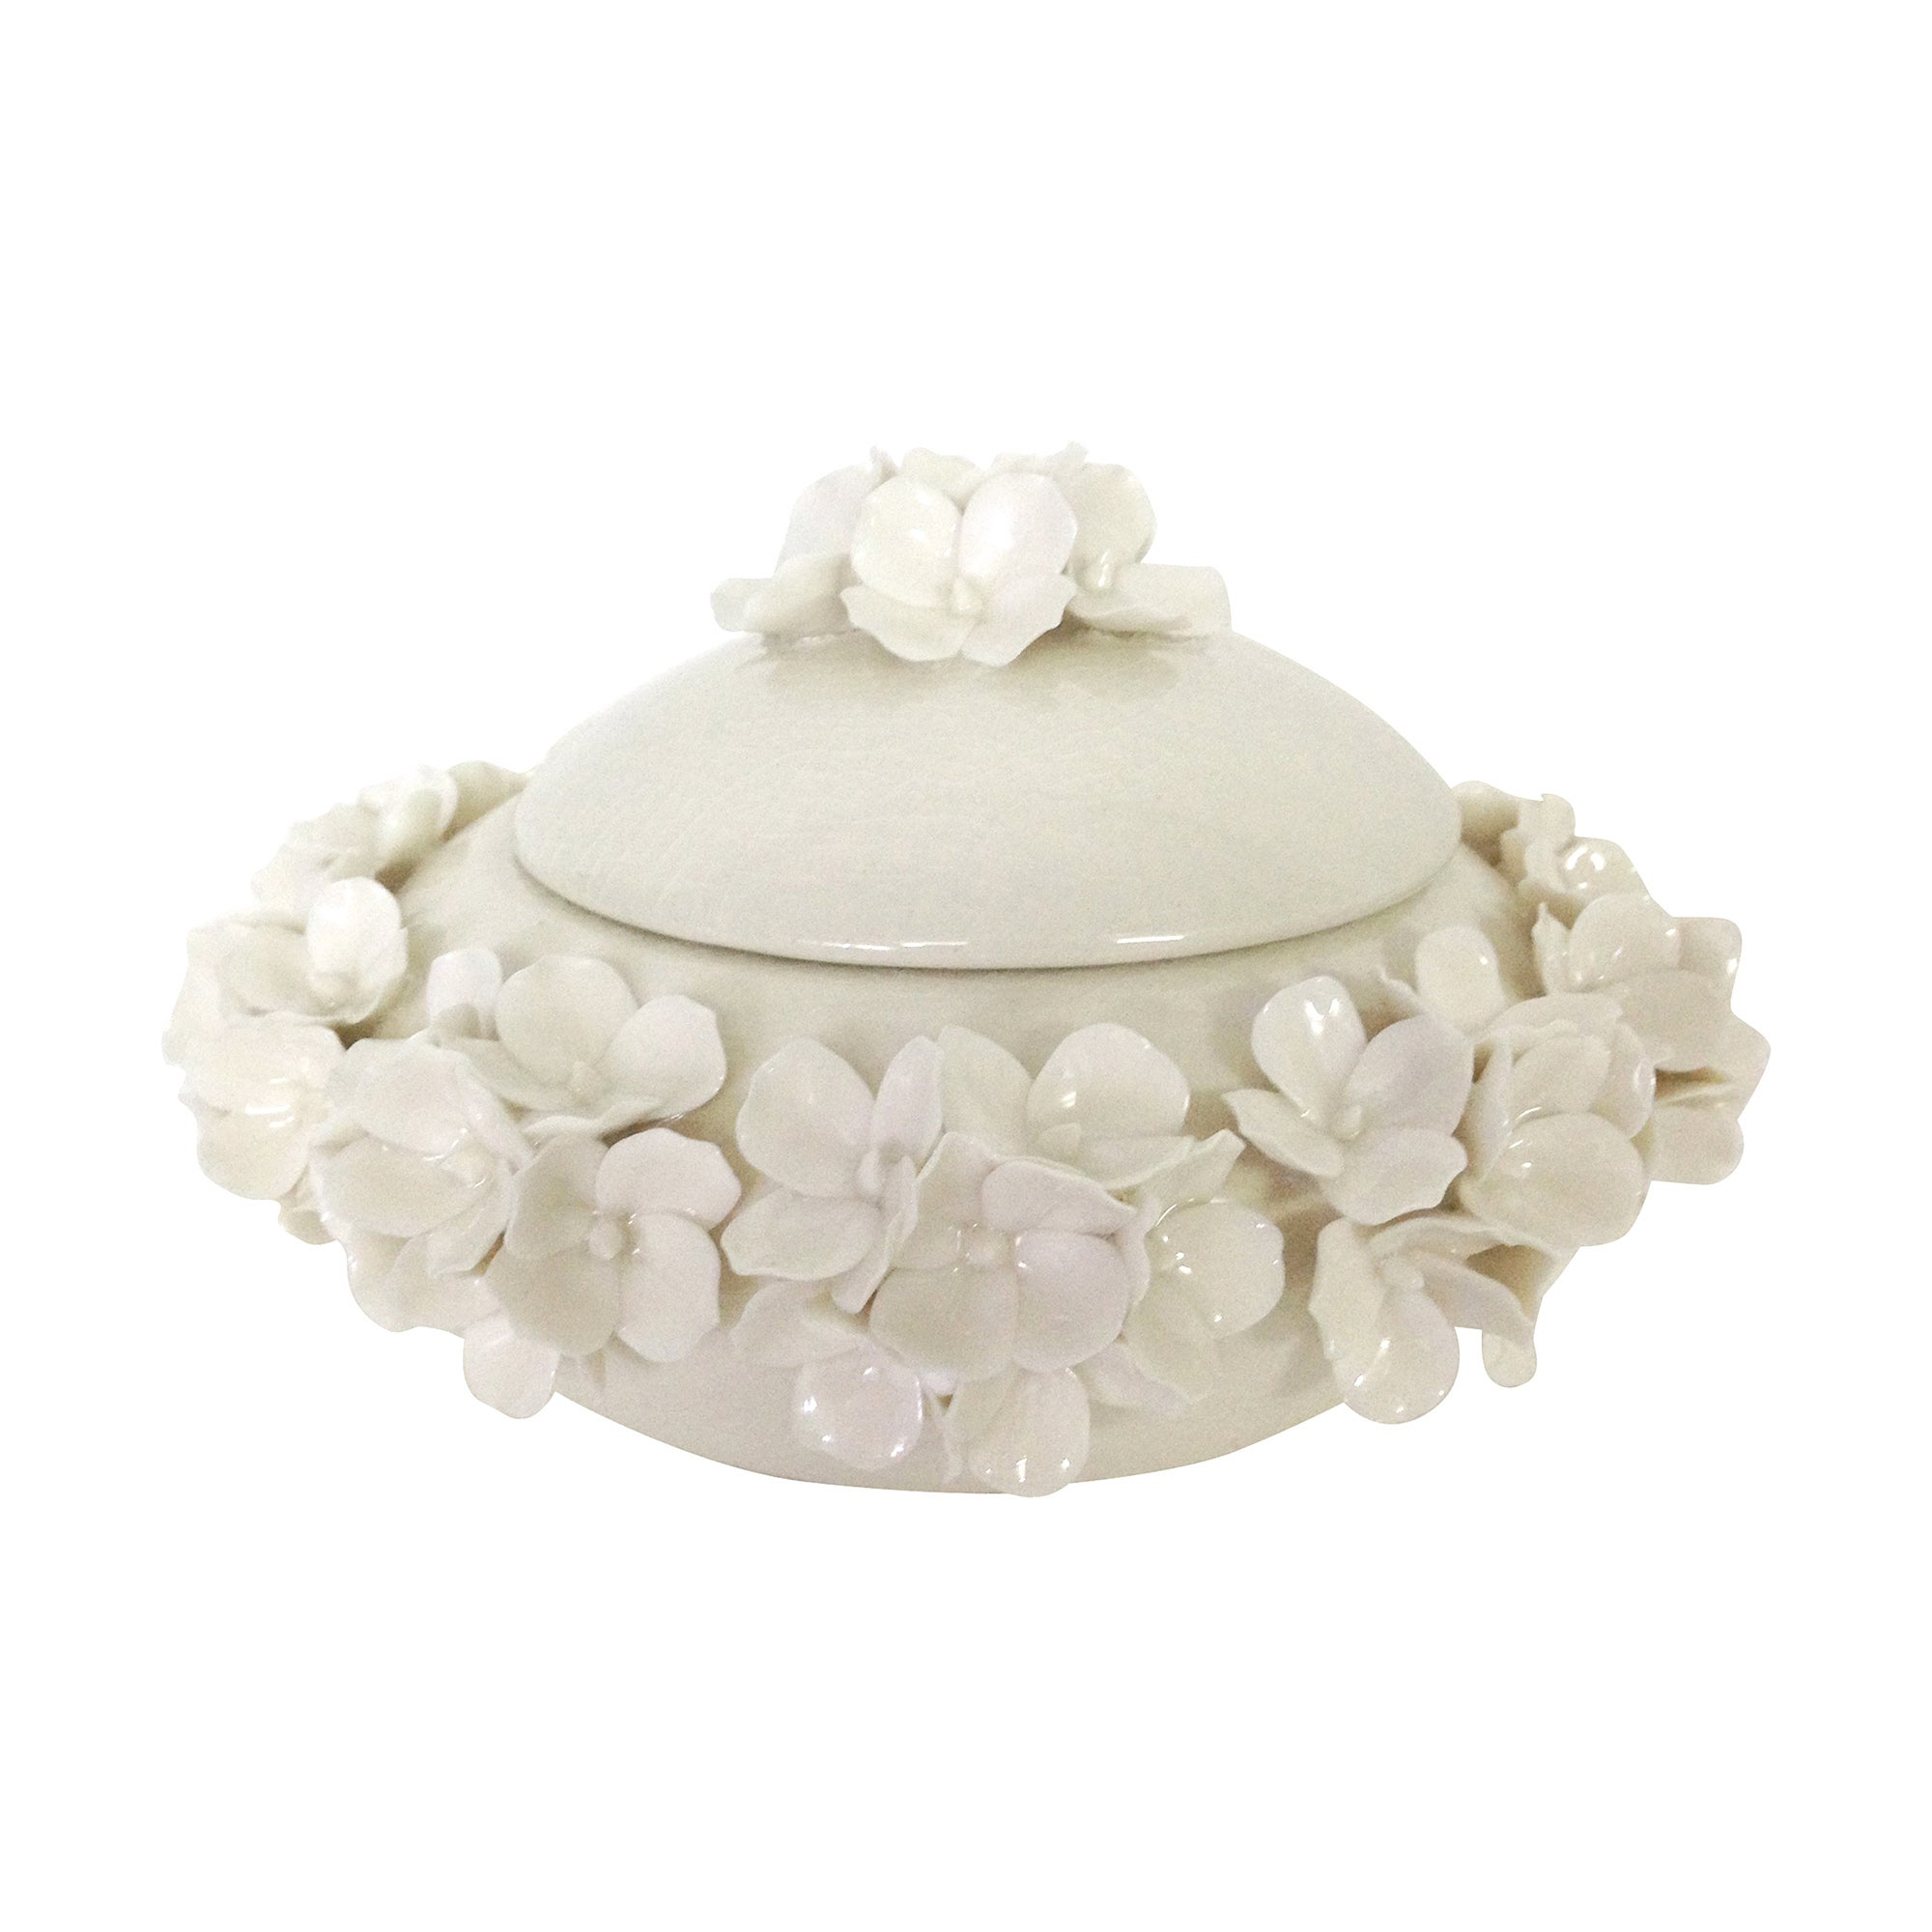 Image of Dorma Cream Flower Trinket Pot Cream